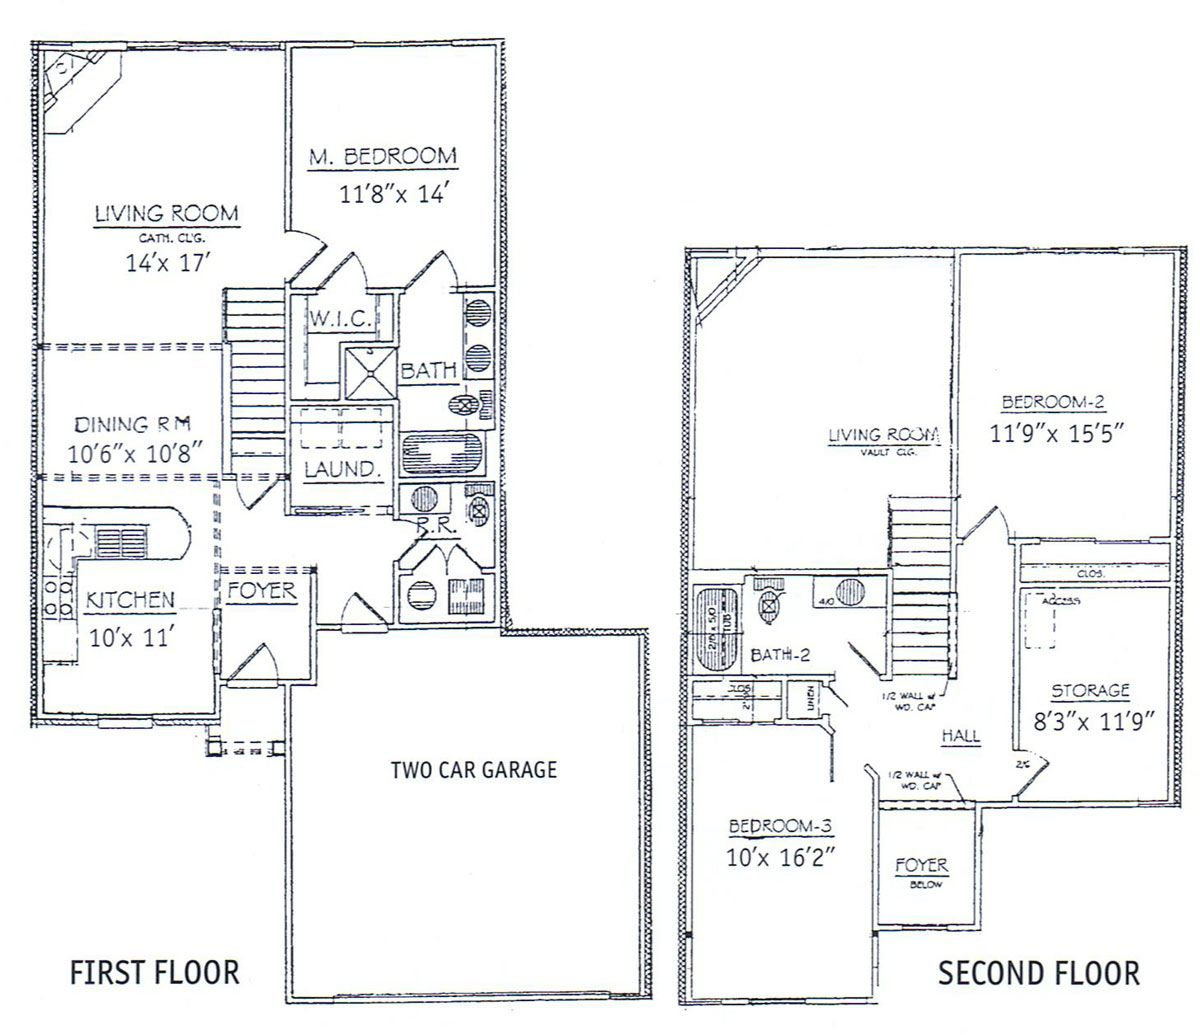 3 bedrooms floor plans 2 story bdrm basement the two for House plans with 2 bedrooms in basement